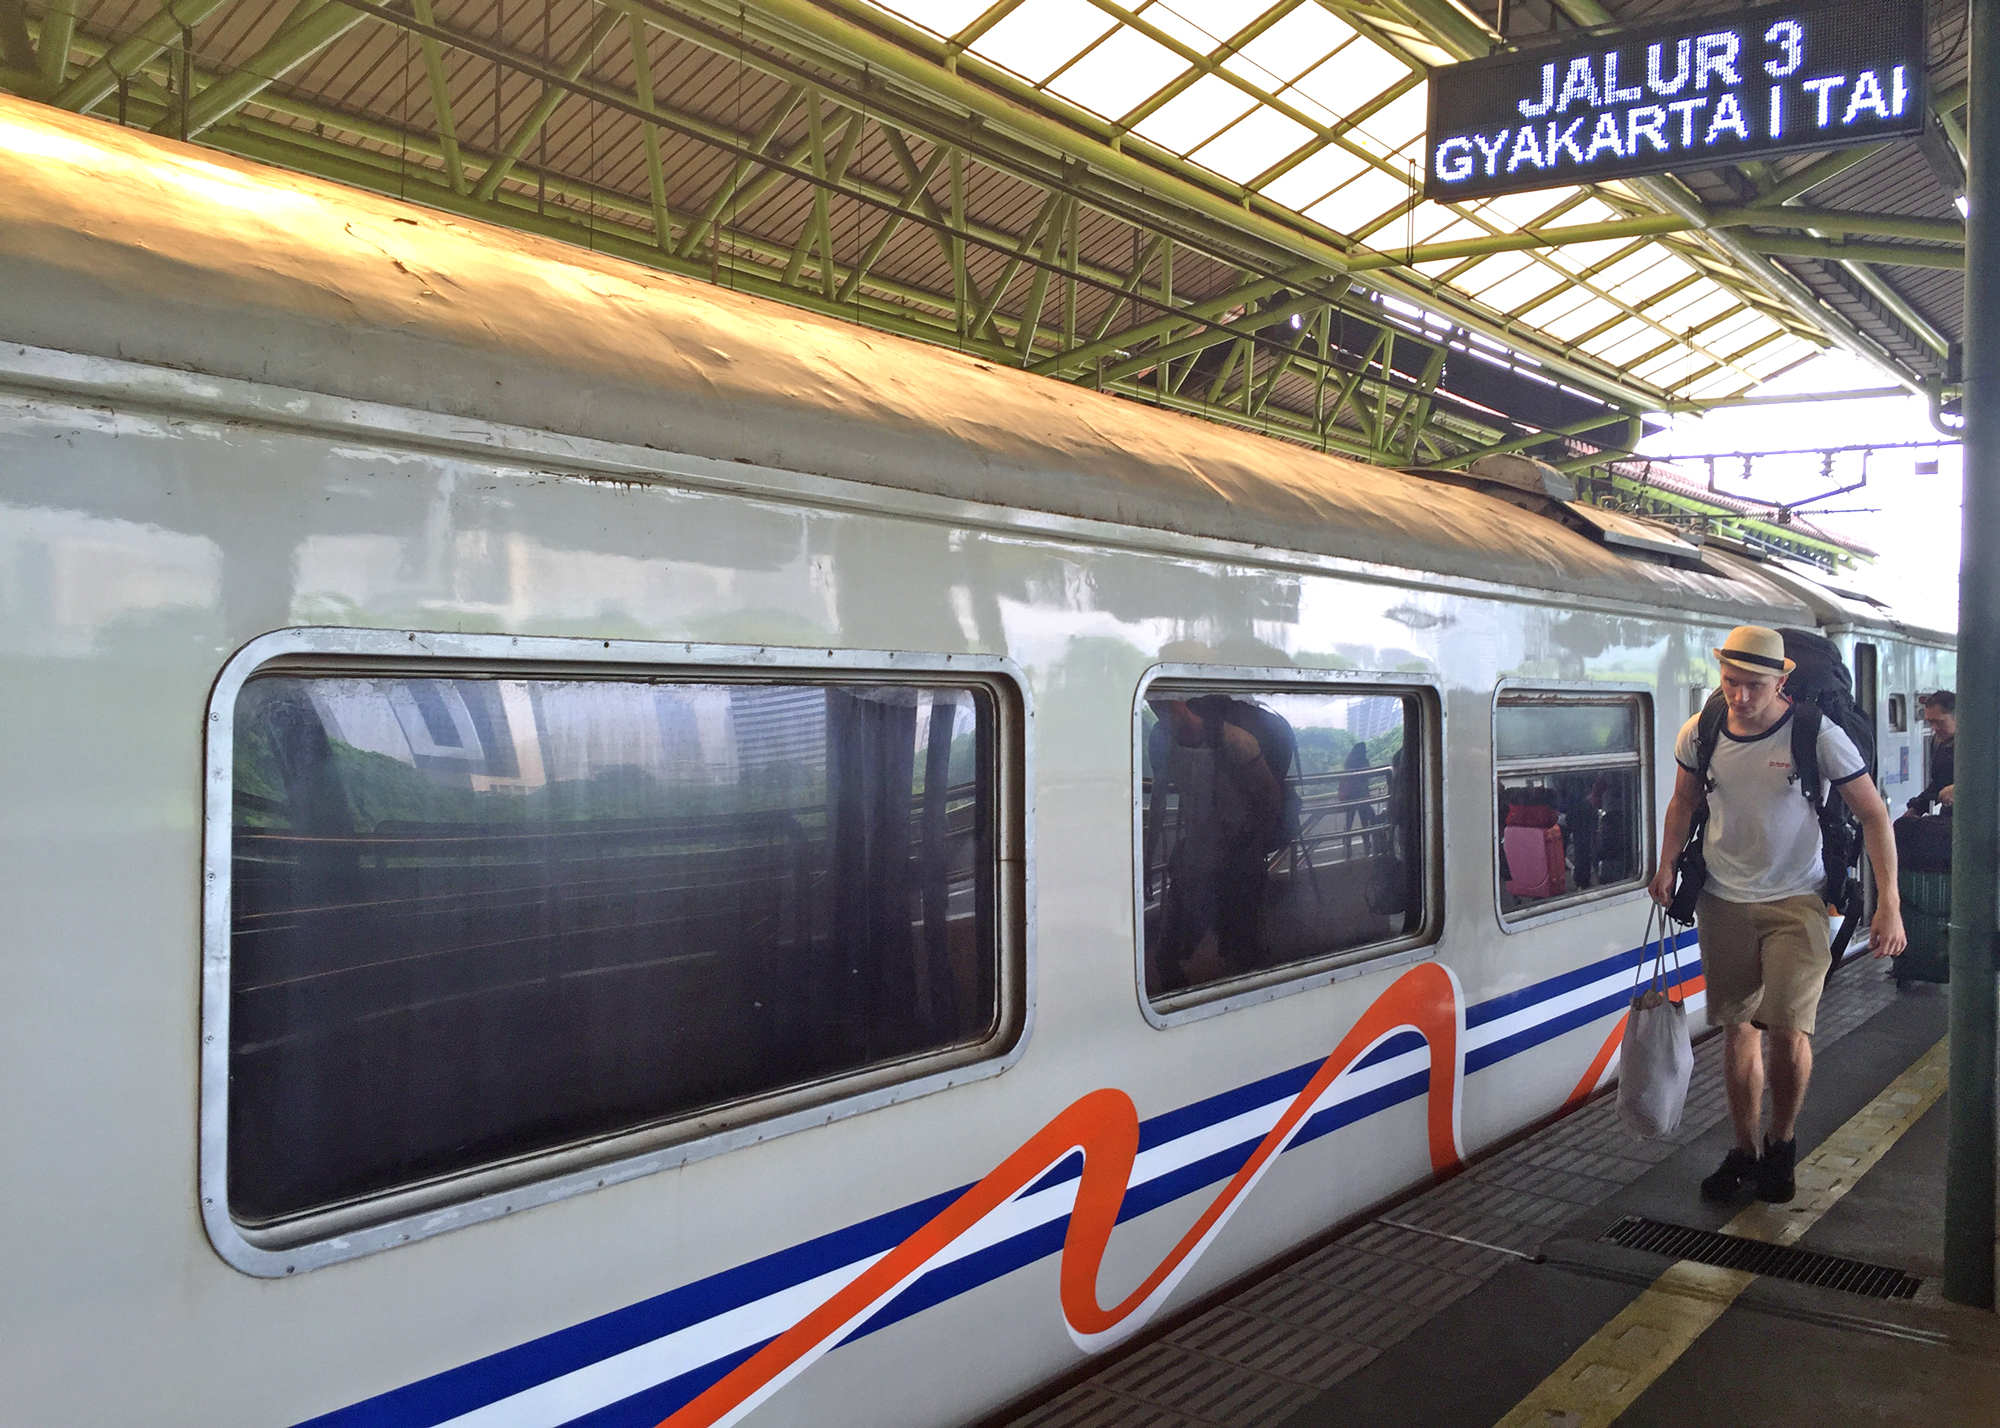 The train about to leave Jakarta